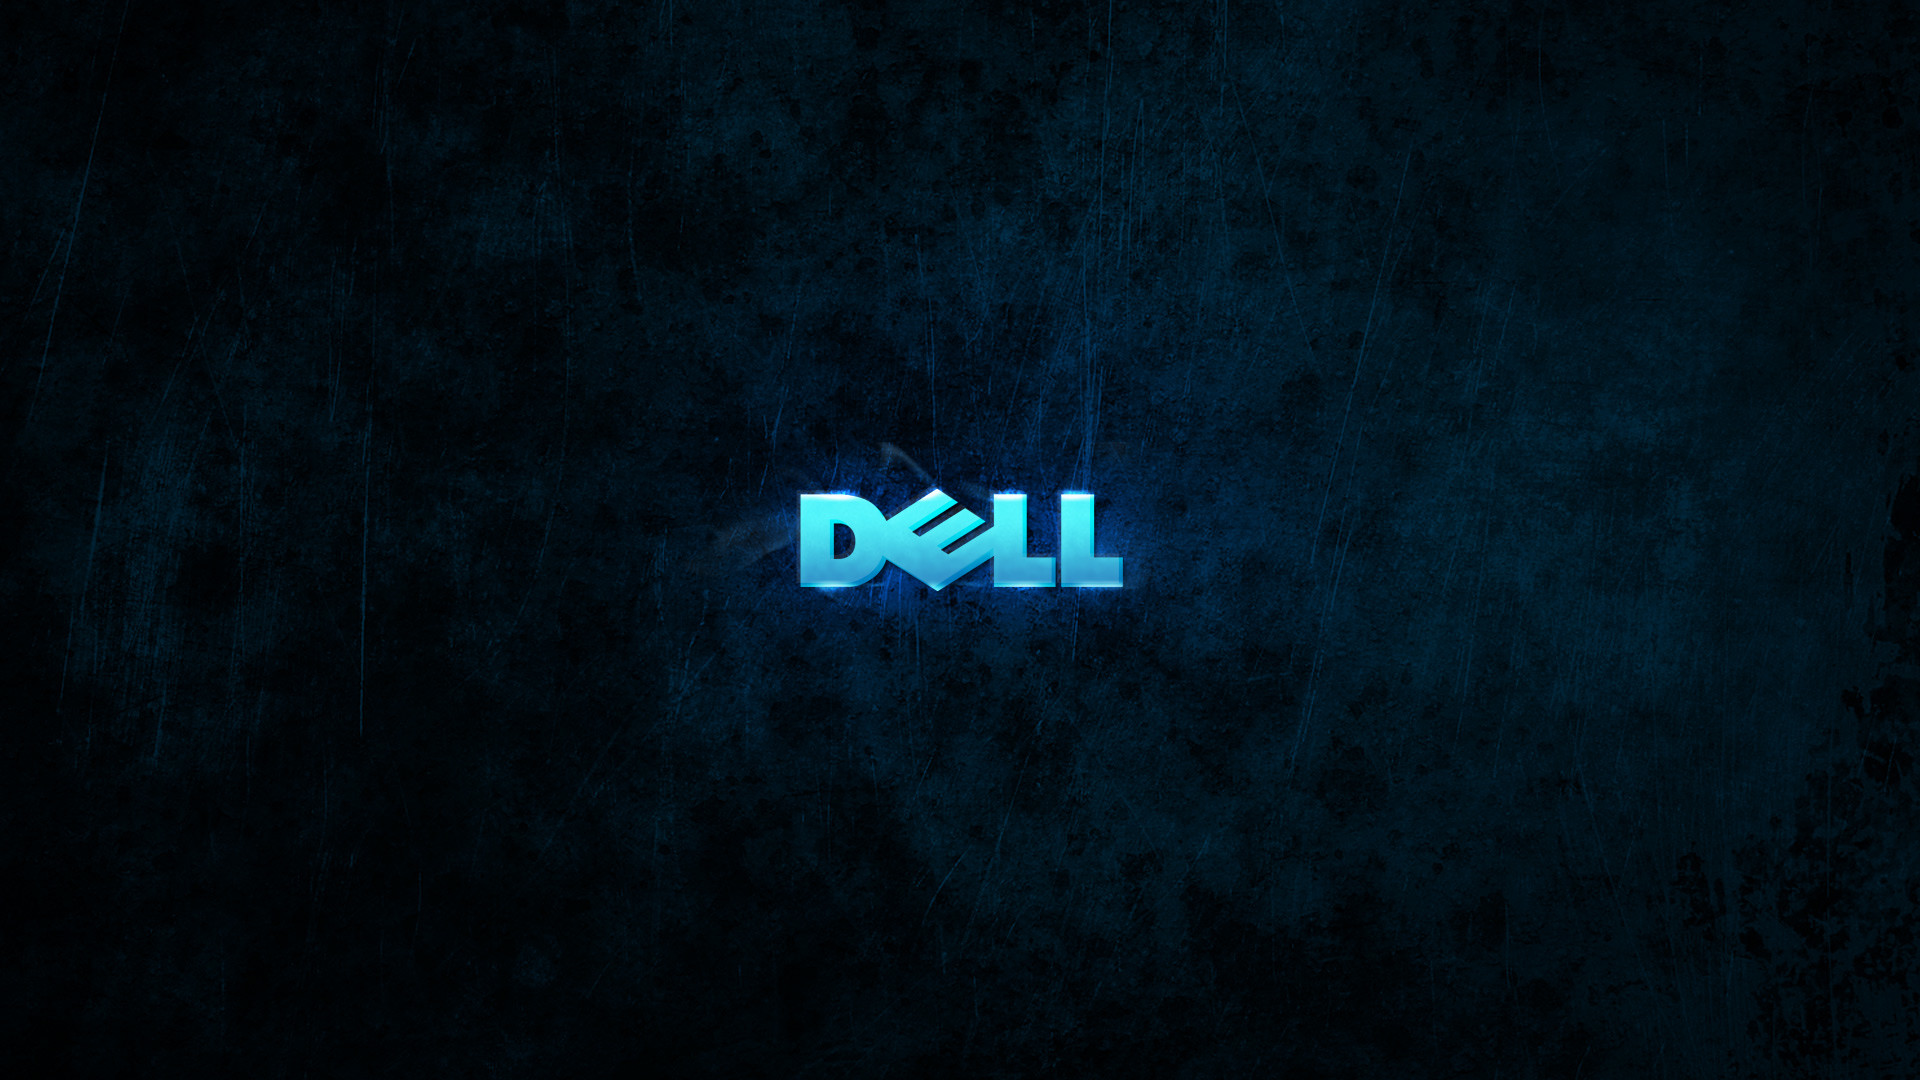 1920x1080 Dell Desktop Wallpaper25944